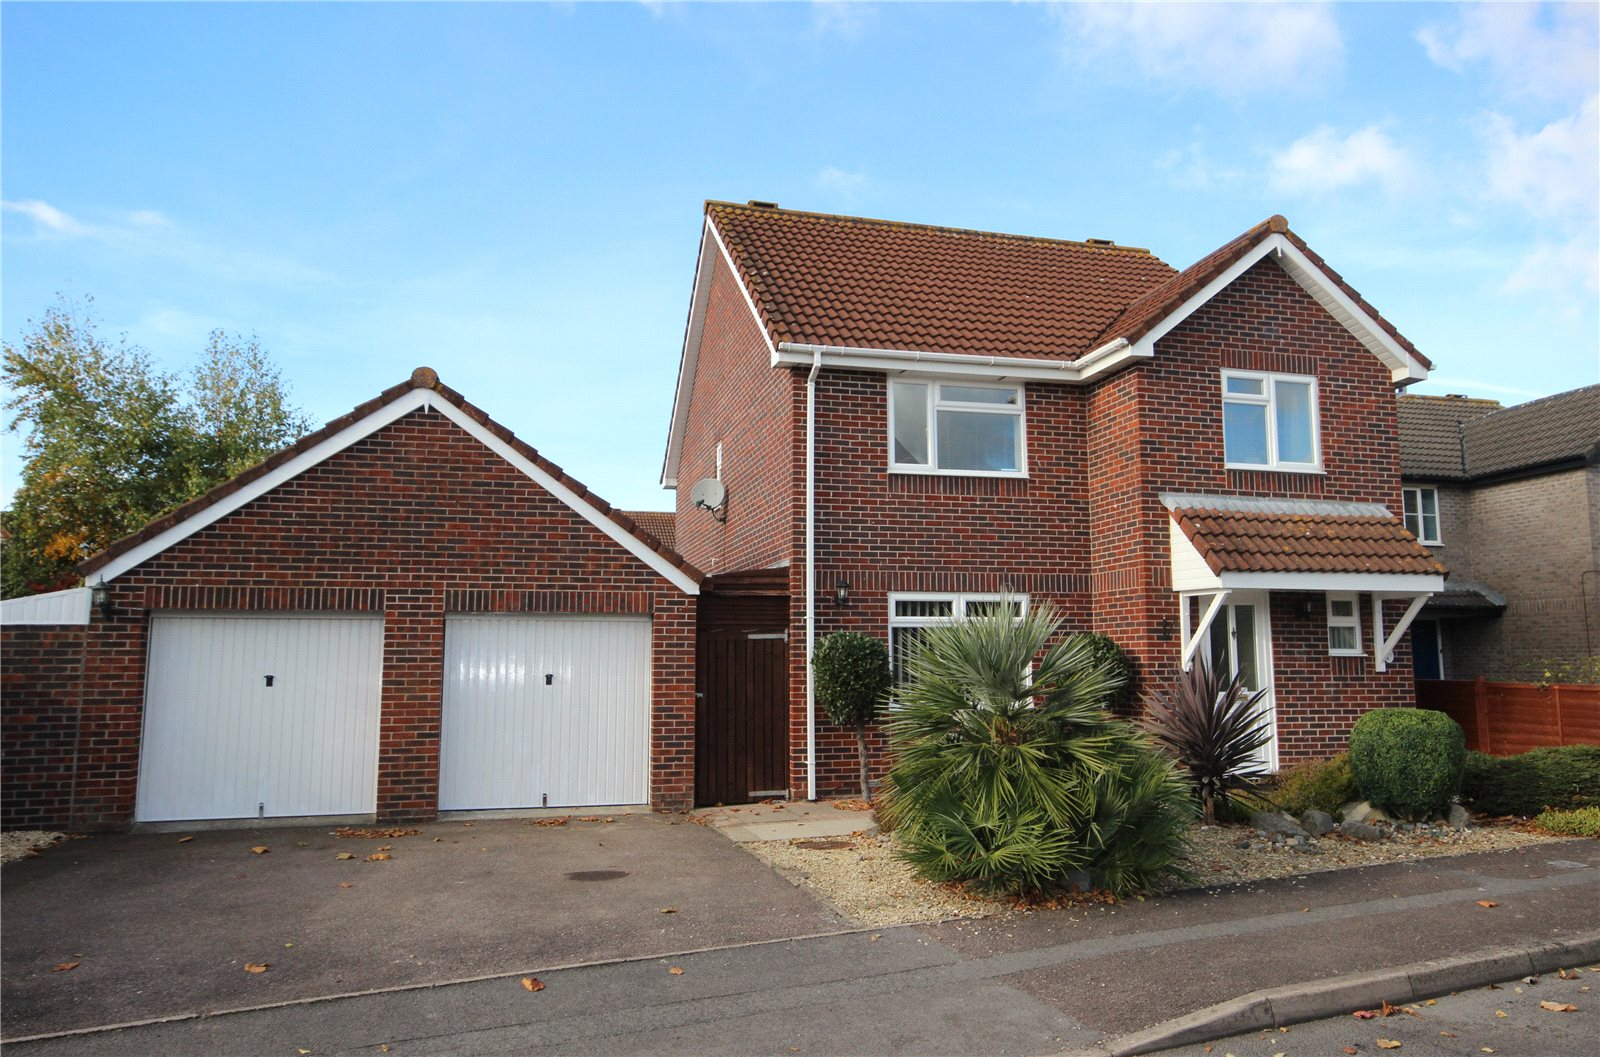 Cj Hole Bradley Stoke 4 Bedroom House For Sale In Foxfield